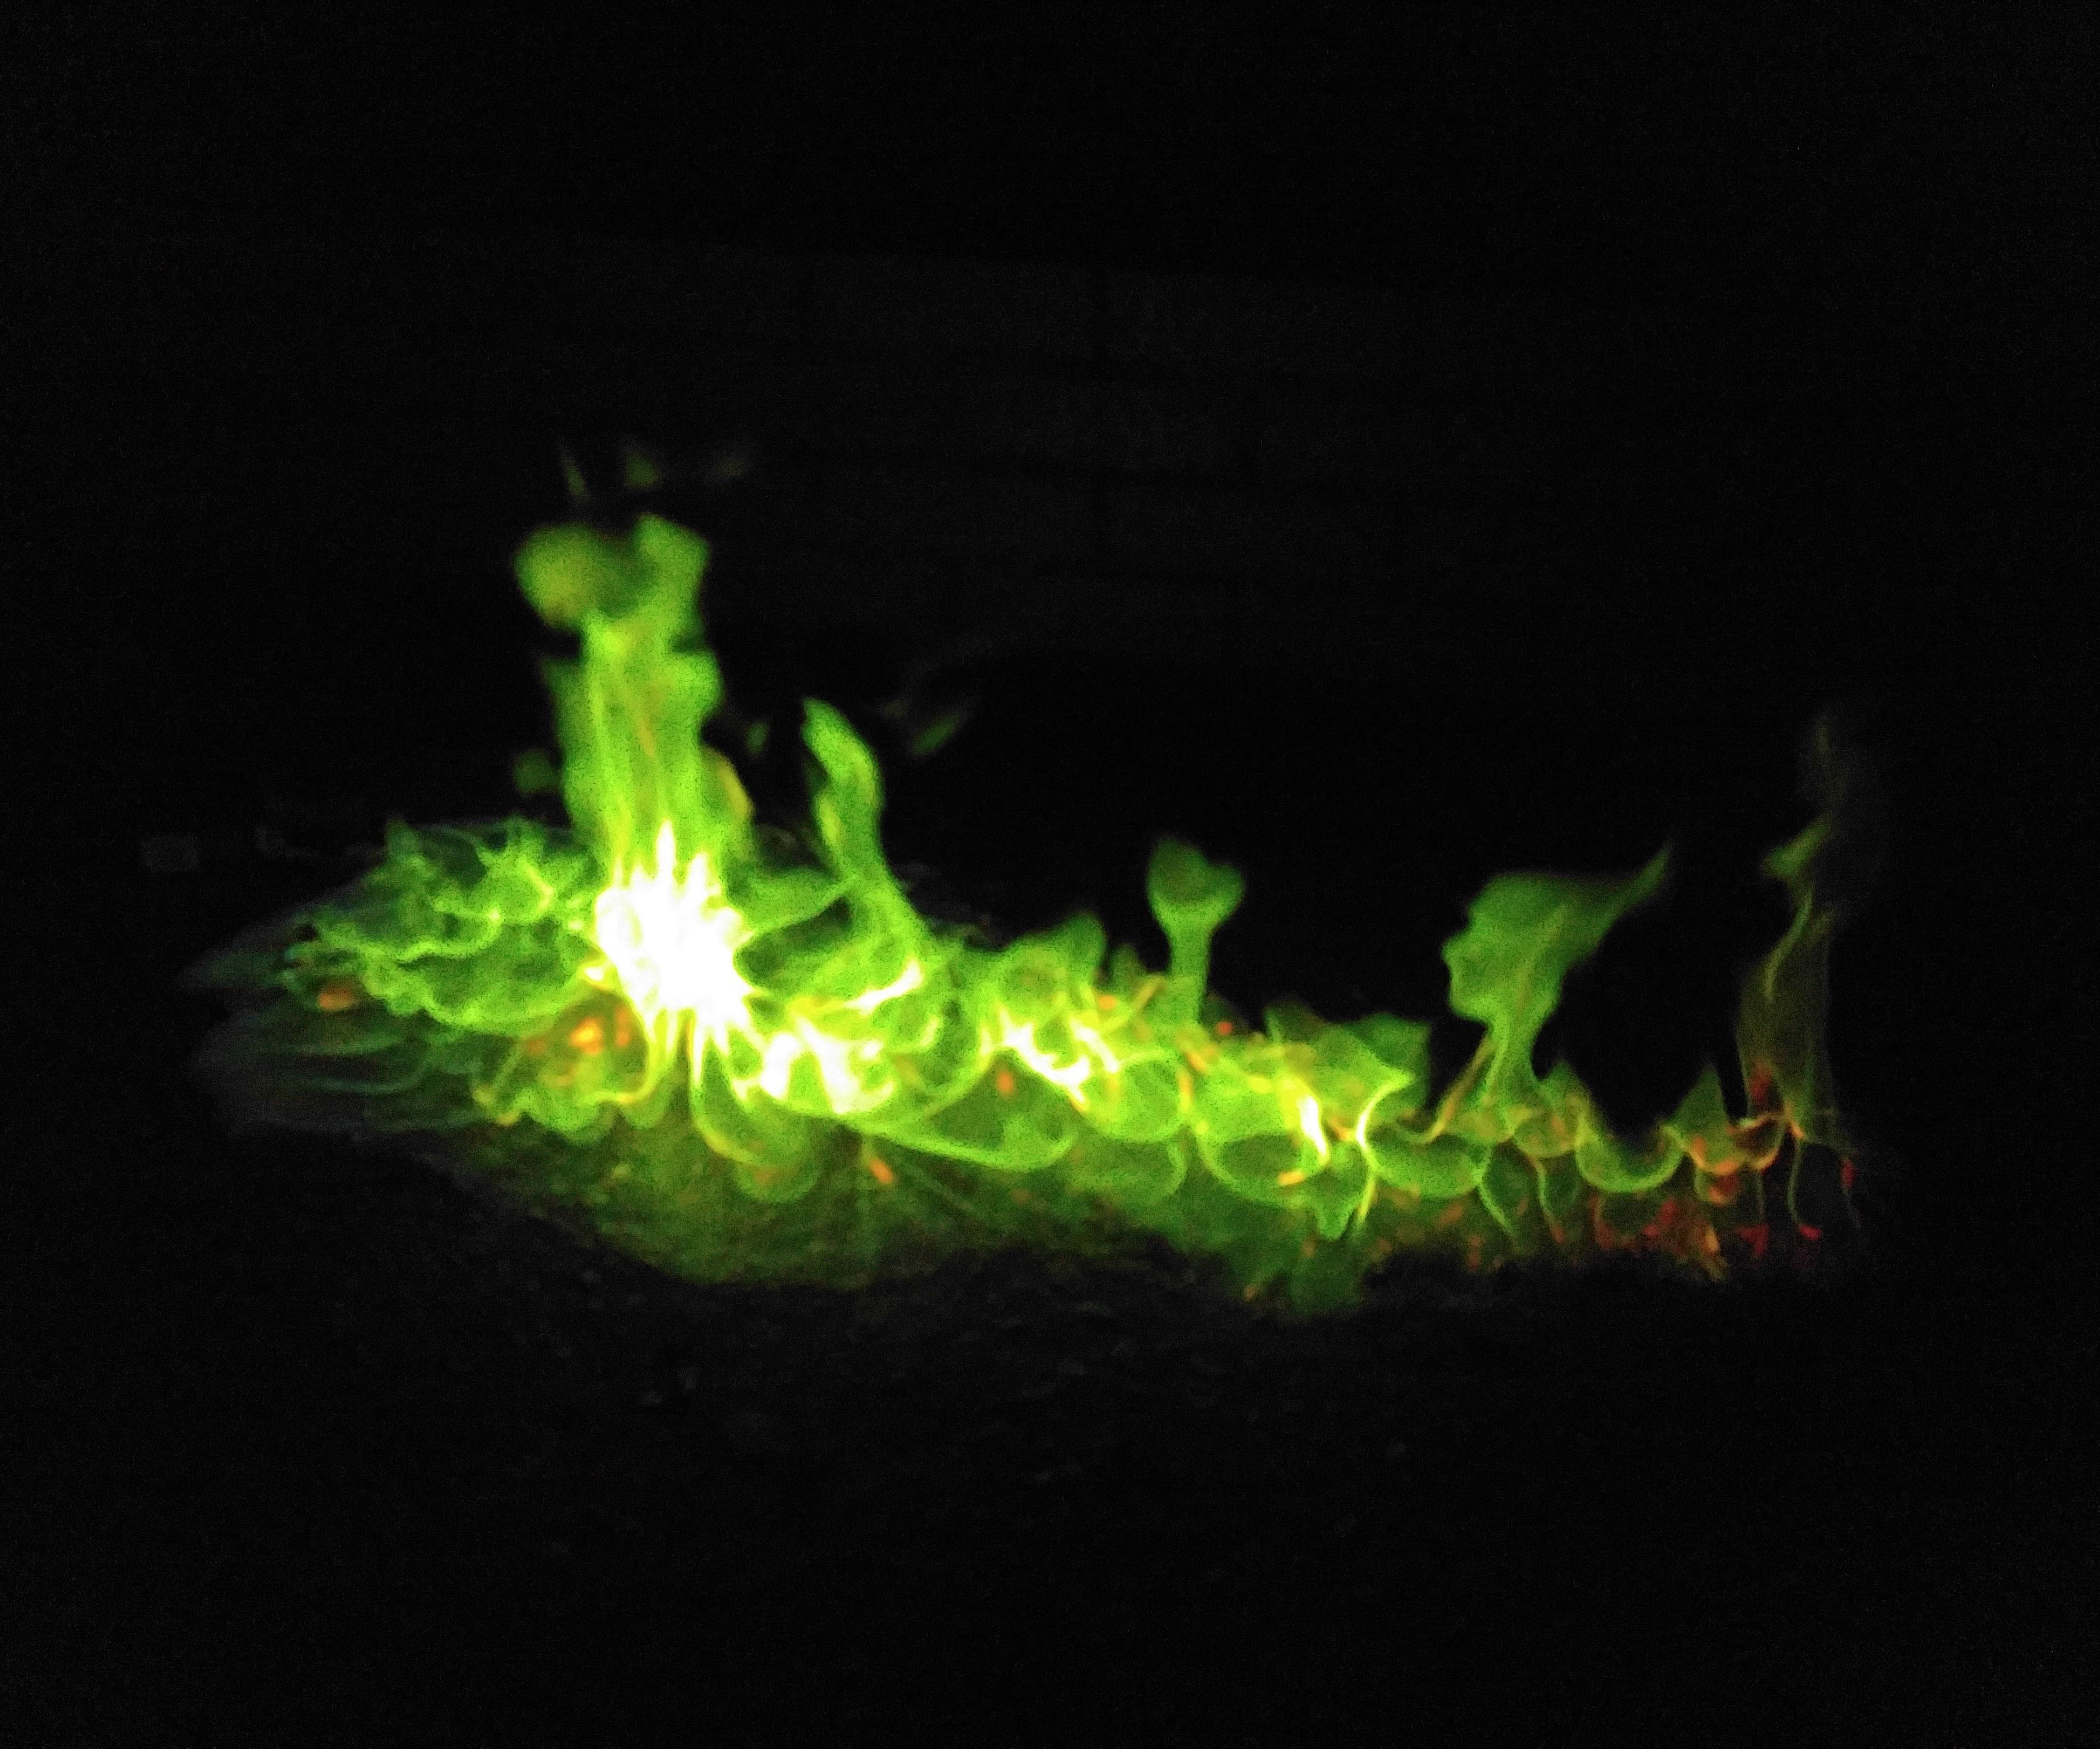 How to make green flames